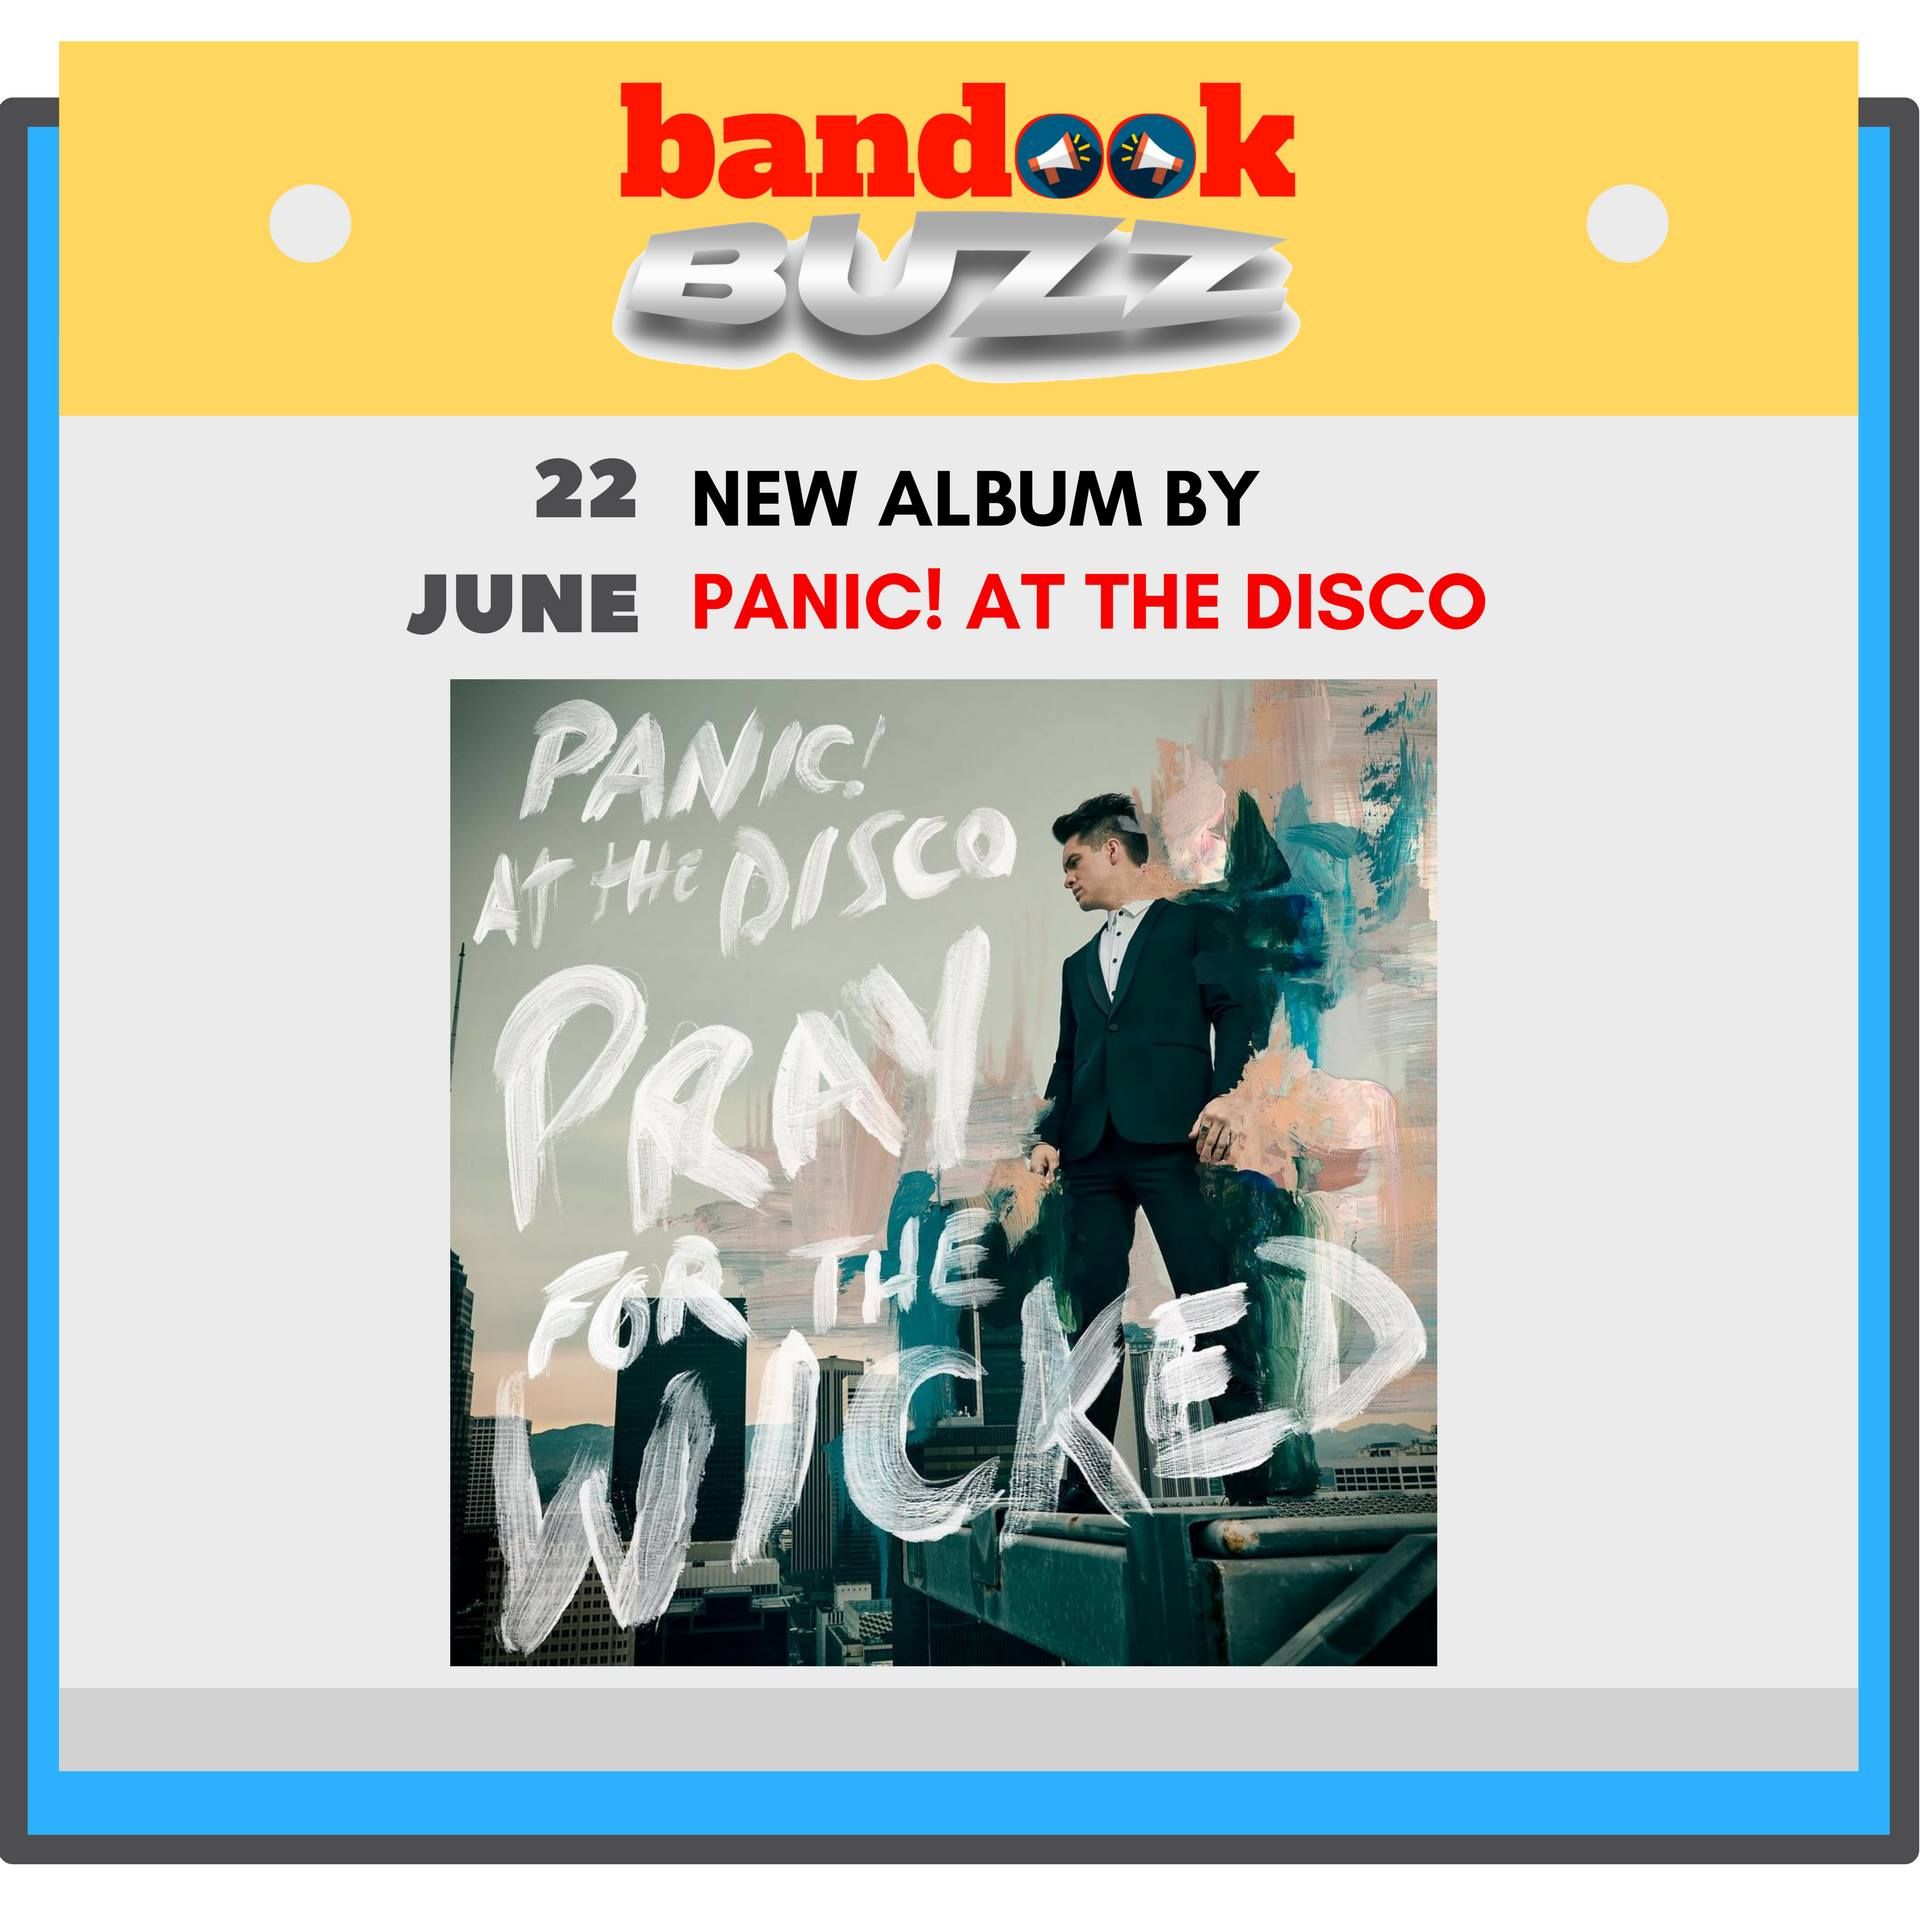 Panic! At The Disco's Brendon Urie wants you to 'Say Amen' while you 'Pray For The Wicked' - Bandook